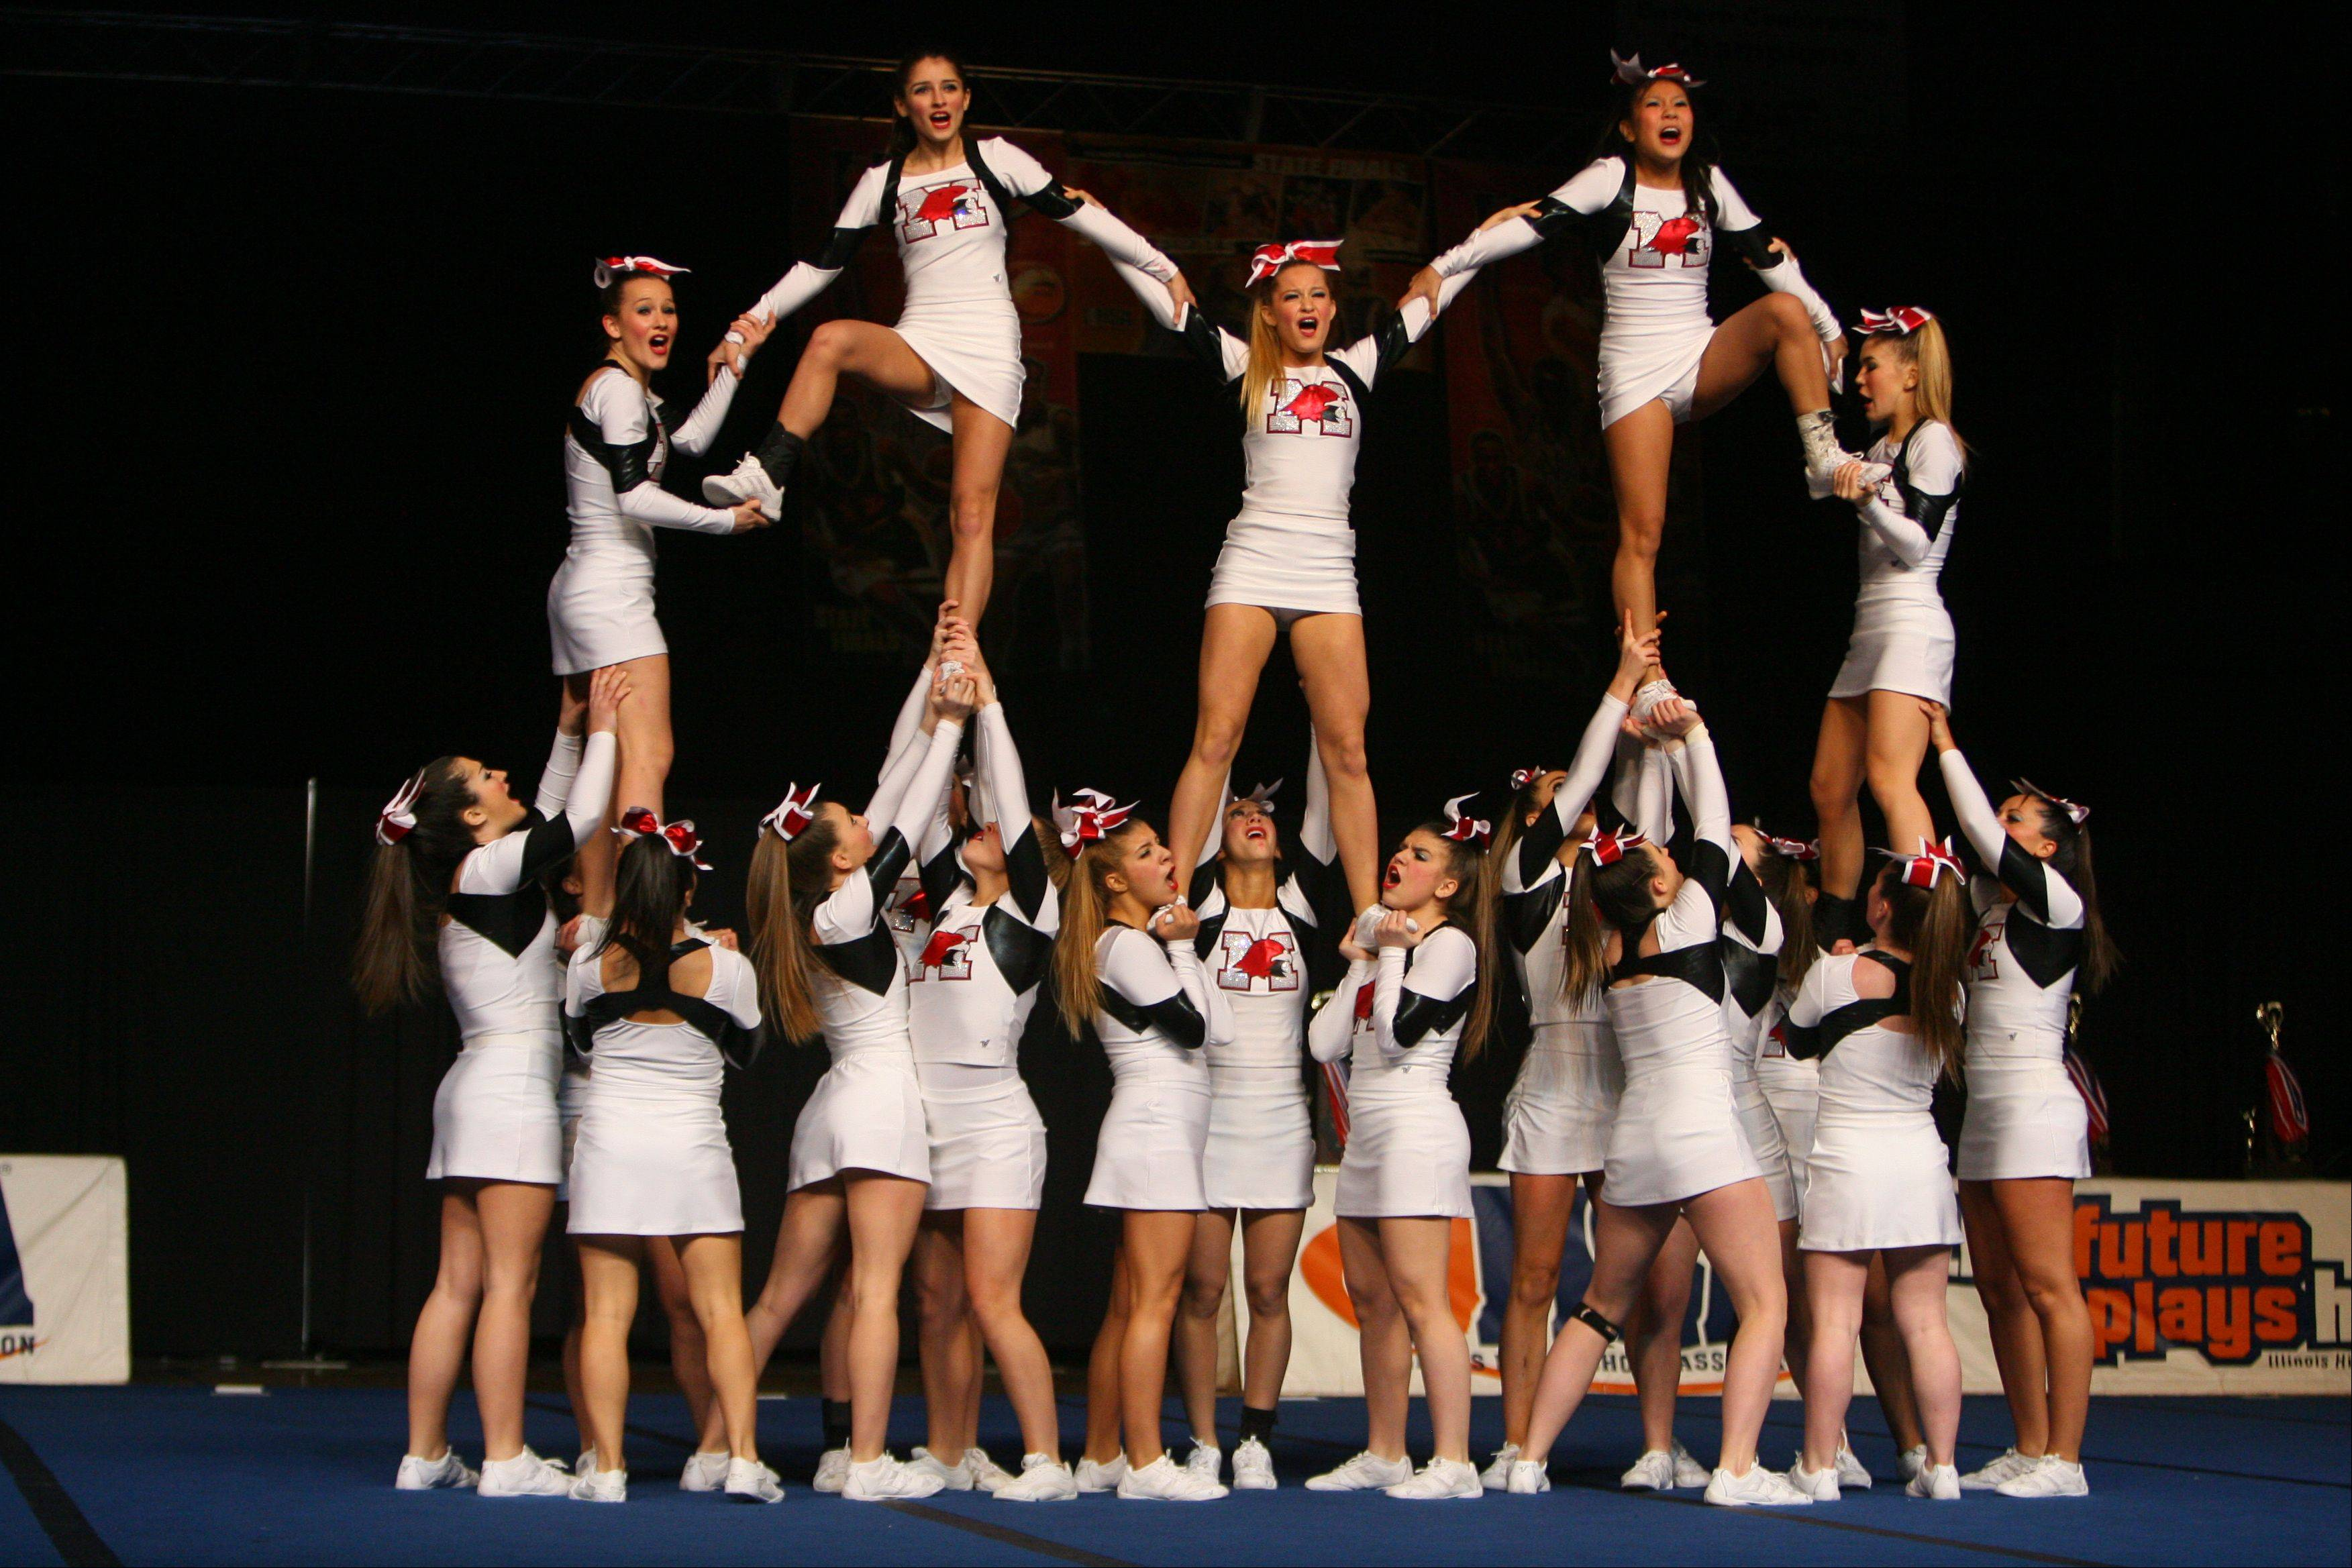 Maine South competes in the in the Competitive Cheerleading prelims on Friday at the U.S. Cellular Coliseum in Bloomington.